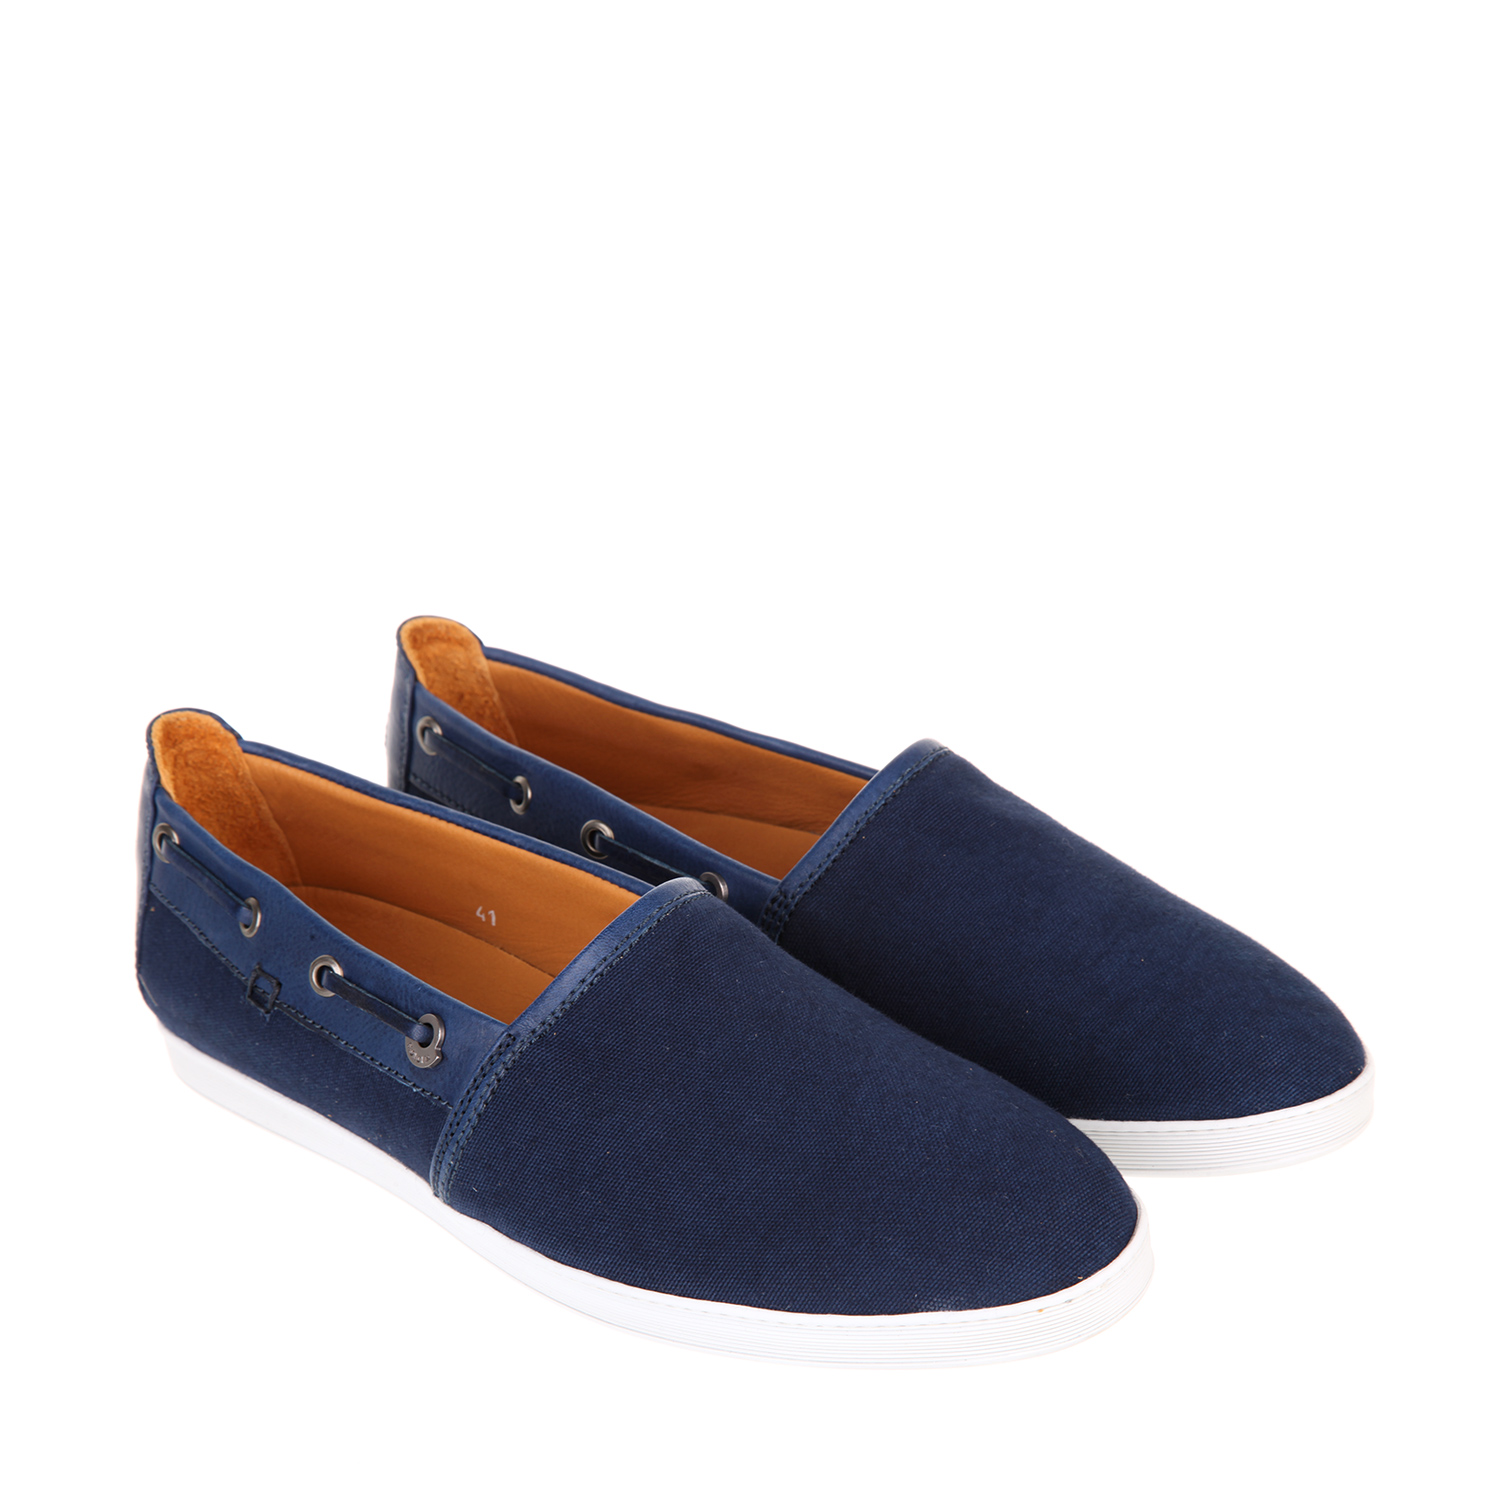 moncler shoes in blue for navy lyst